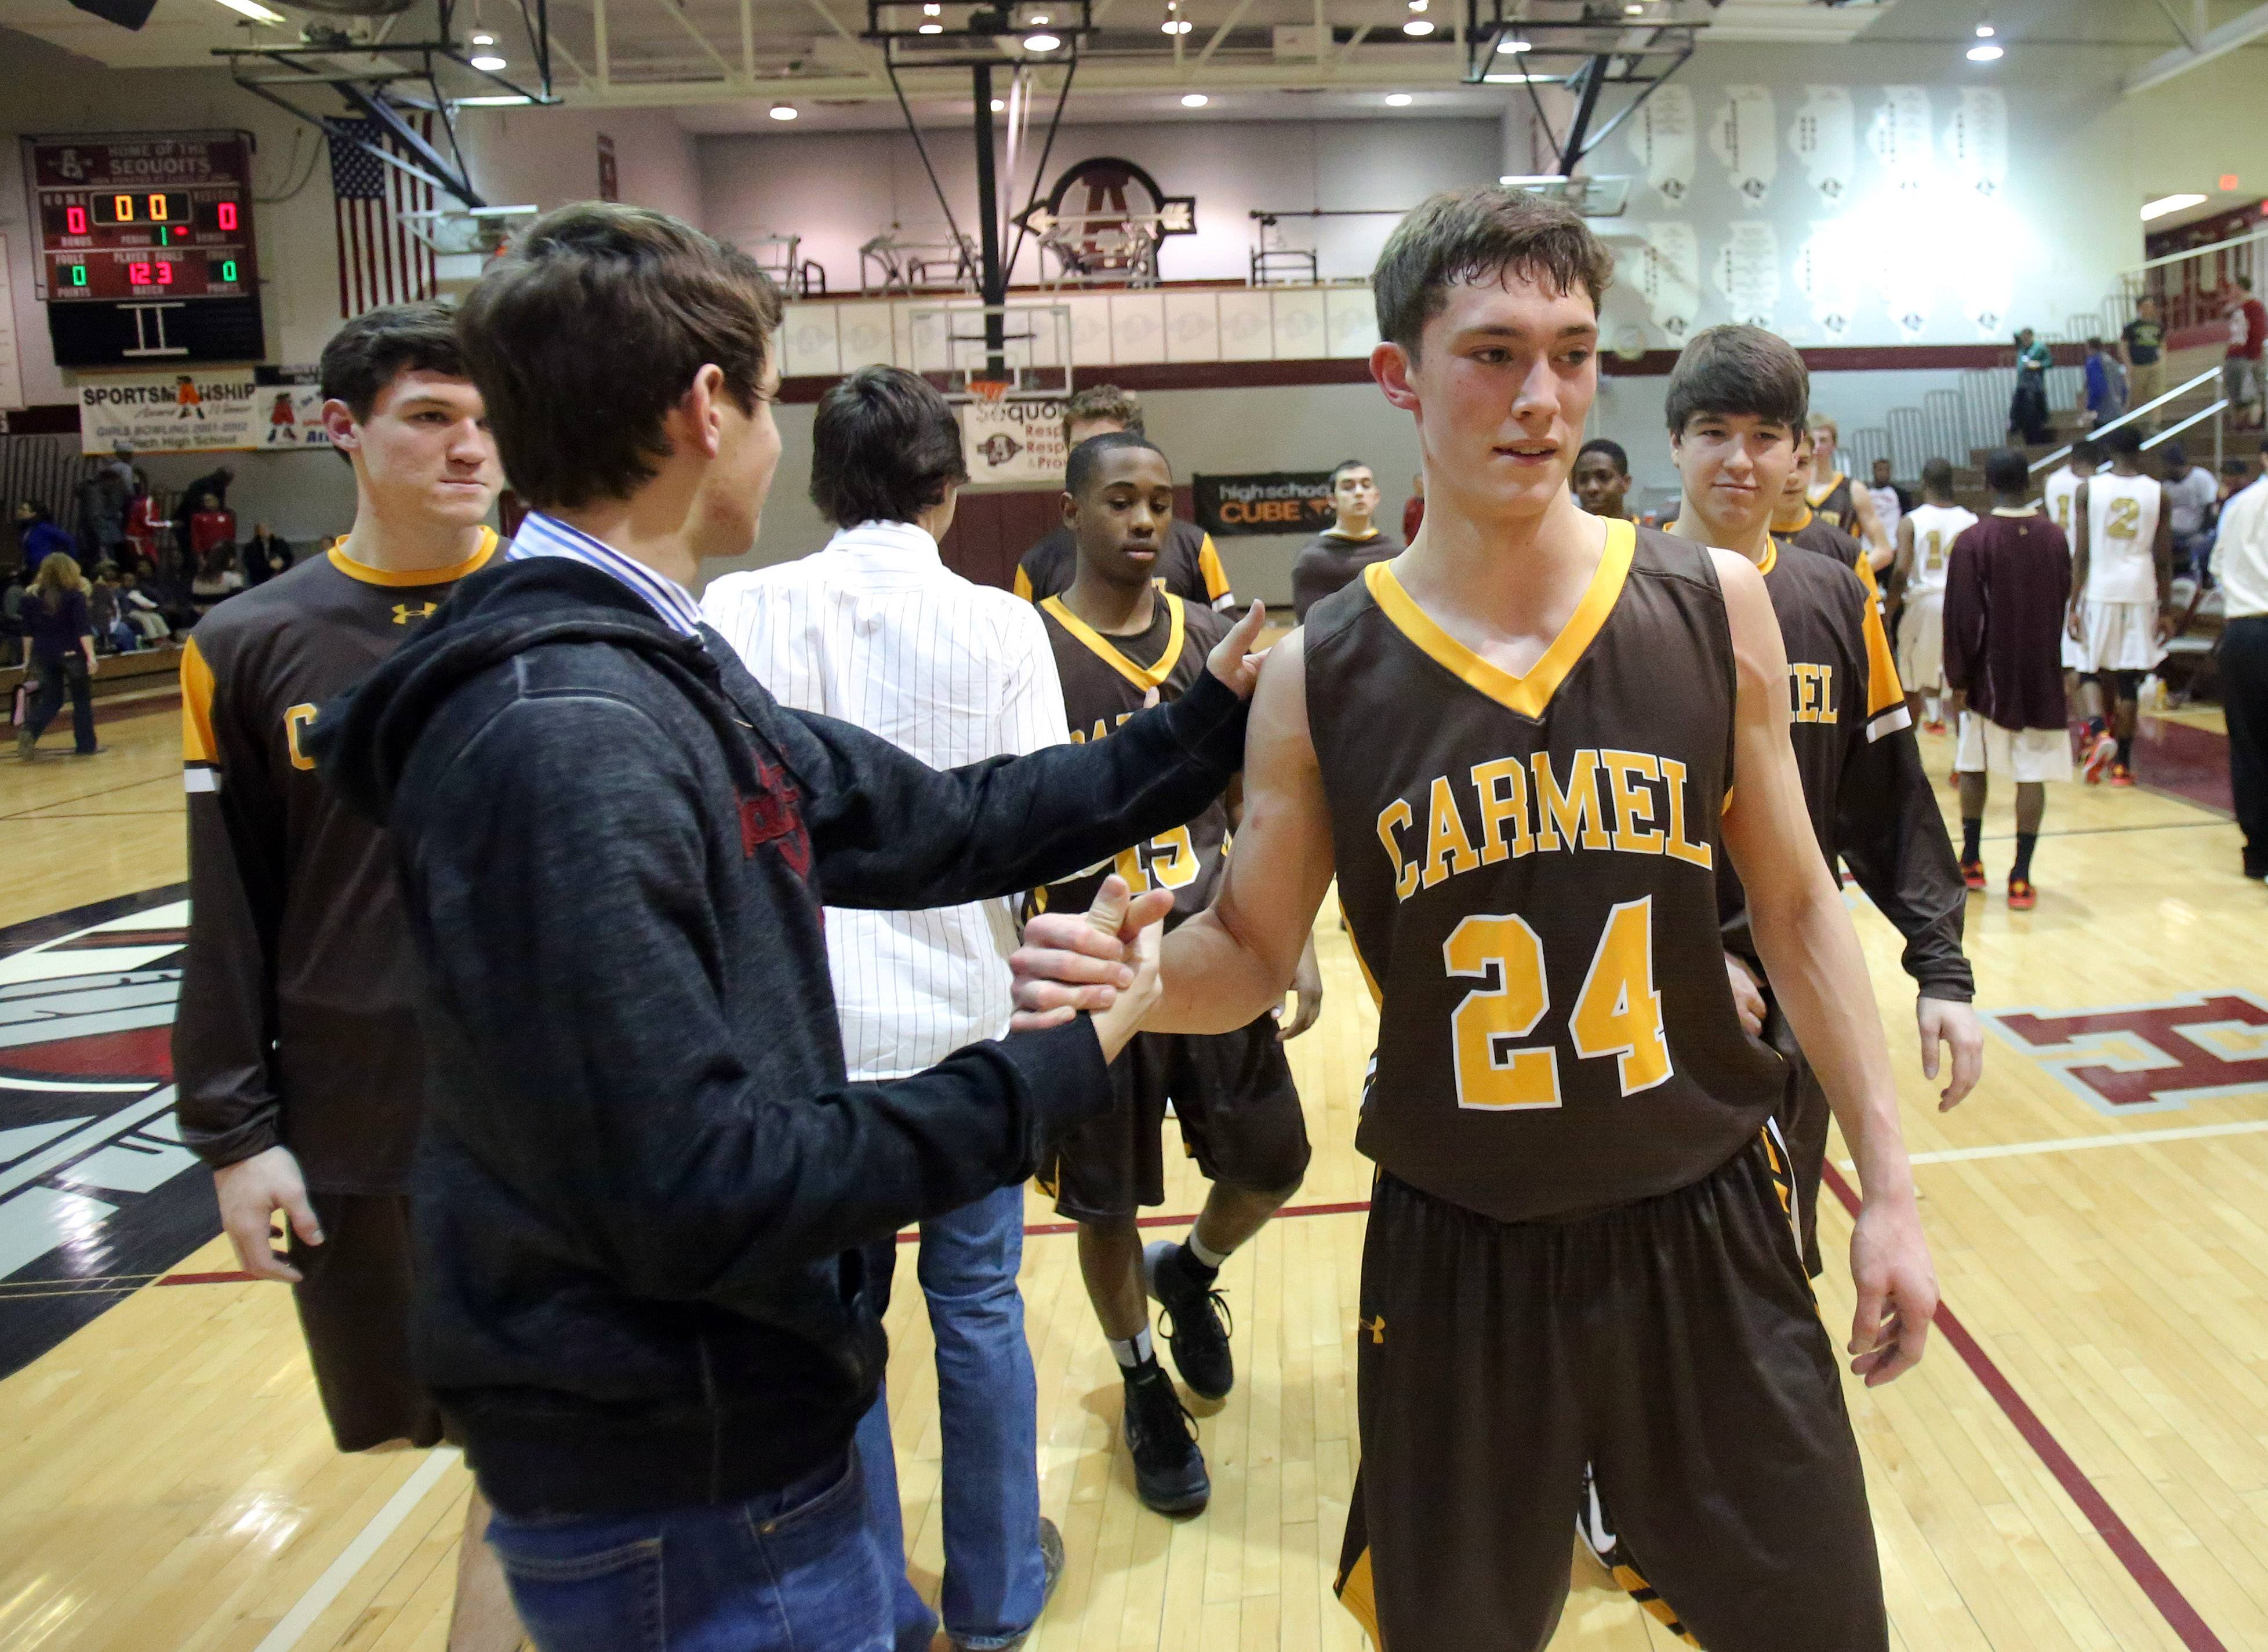 Carmel's Billy Kirby celebrates after the Corsairs' win over Uplift in the Class 3A sectional semifinal at Antioch on Wednesday.